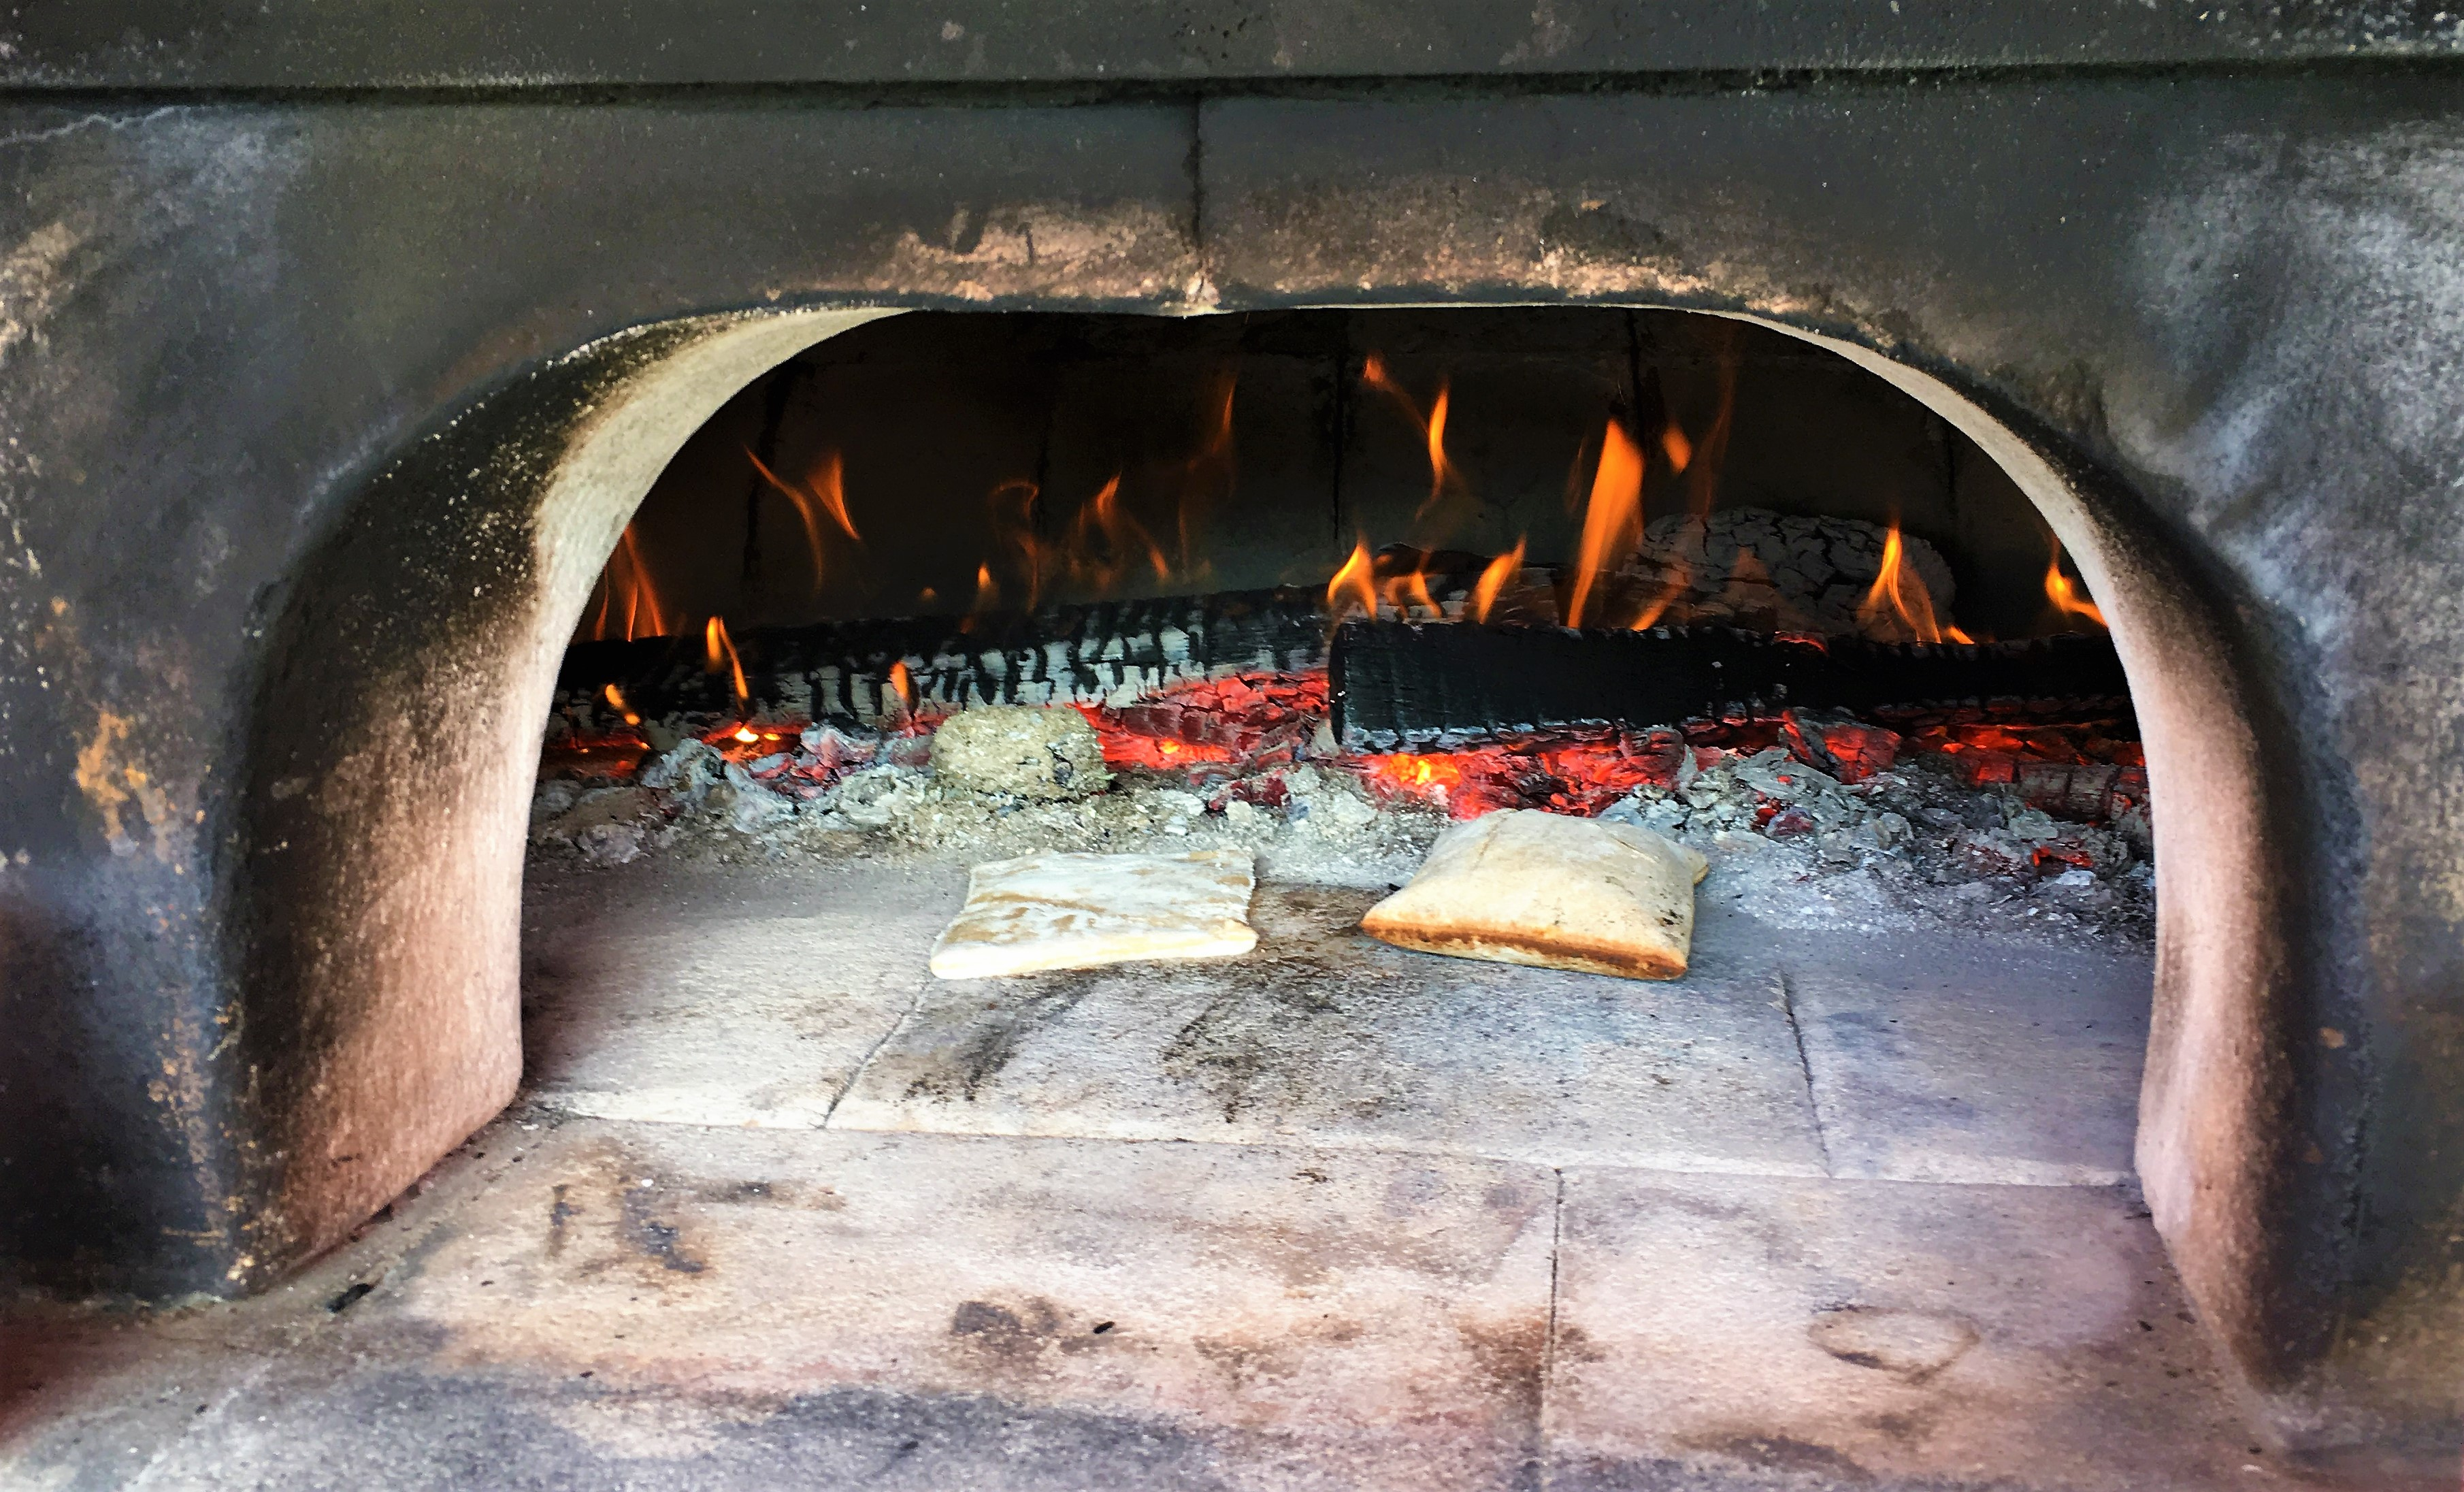 Fouée: Wood oven baked bread